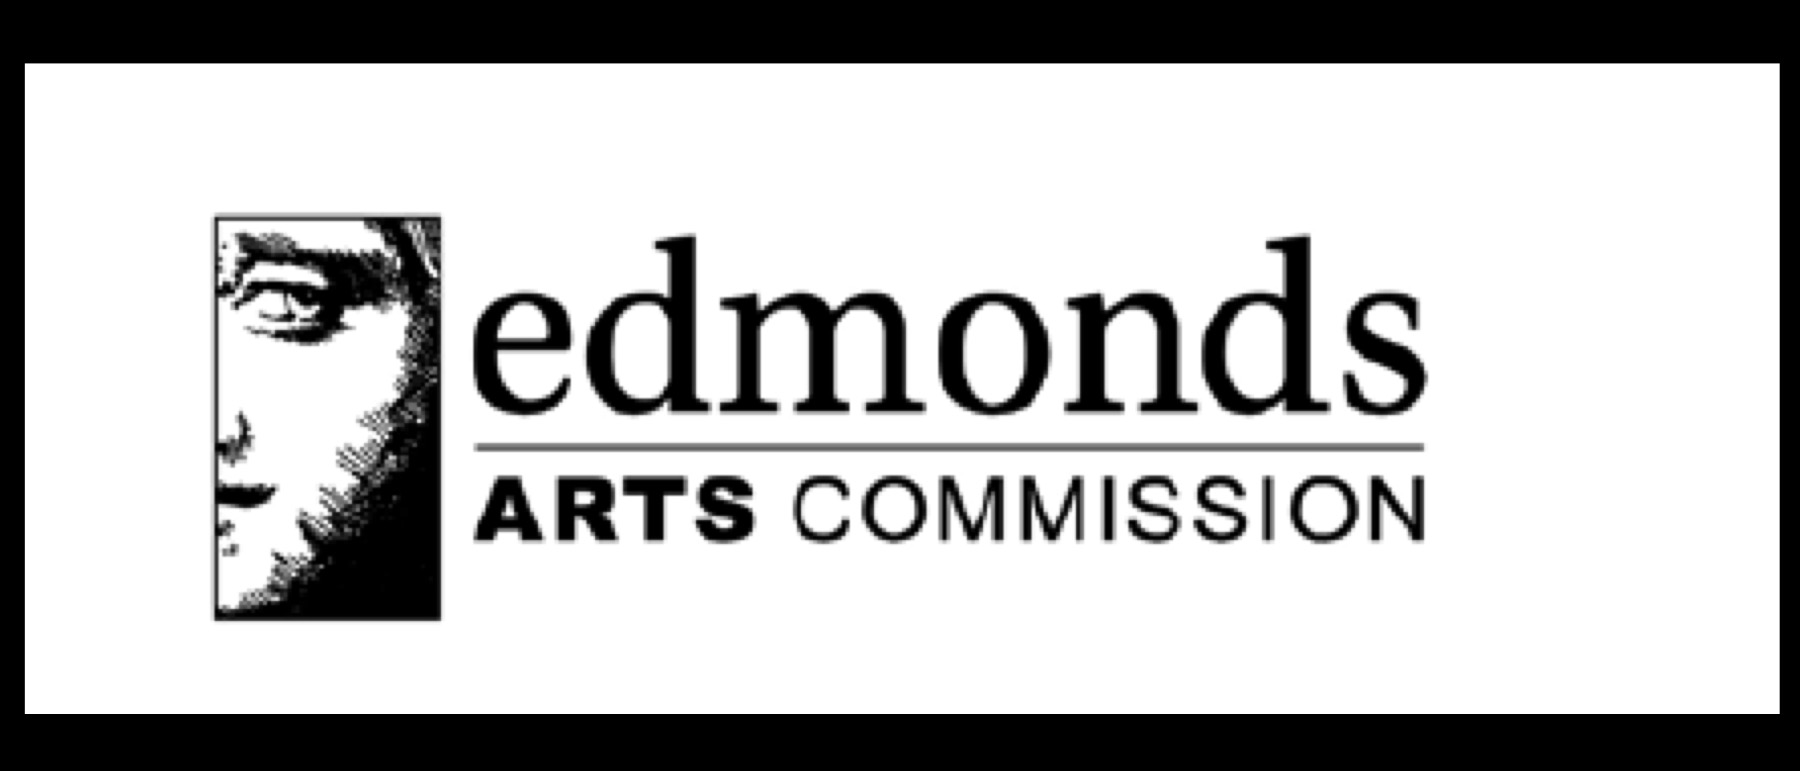 Student representative sought for Edmonds Arts Commission